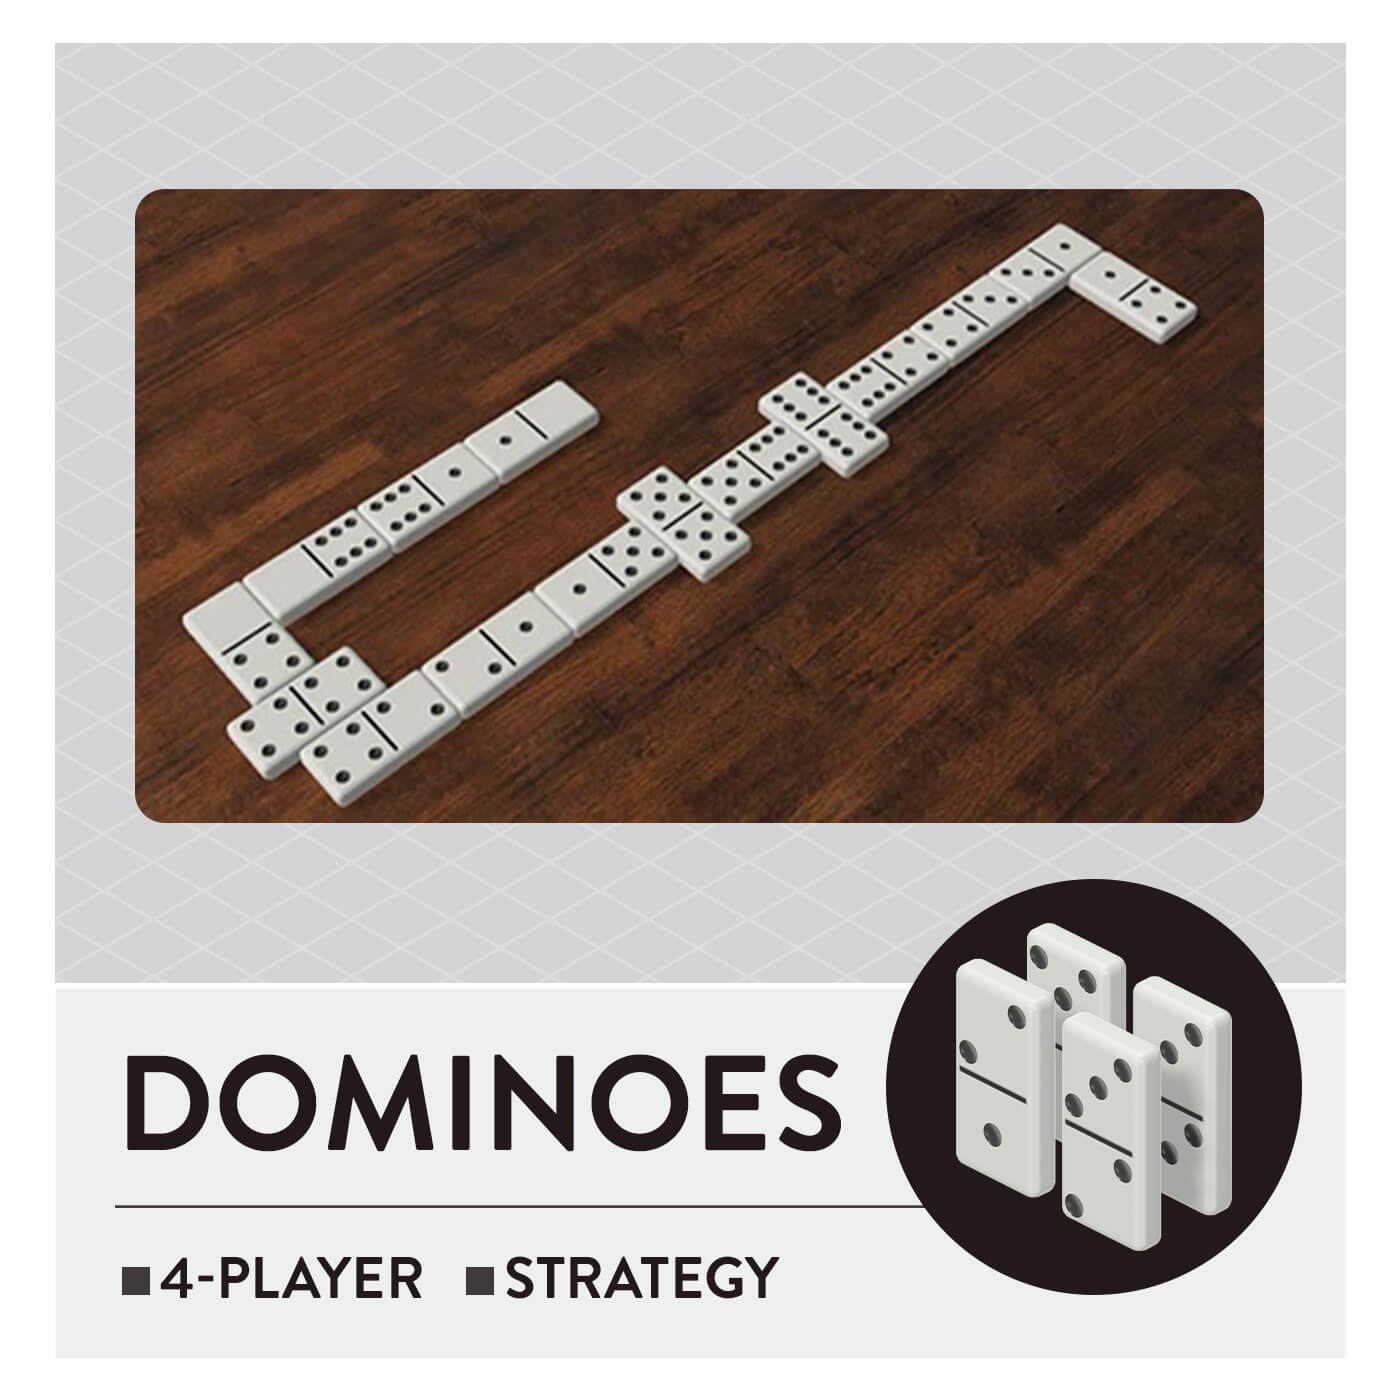 51 Worldwide Games - Dominoes